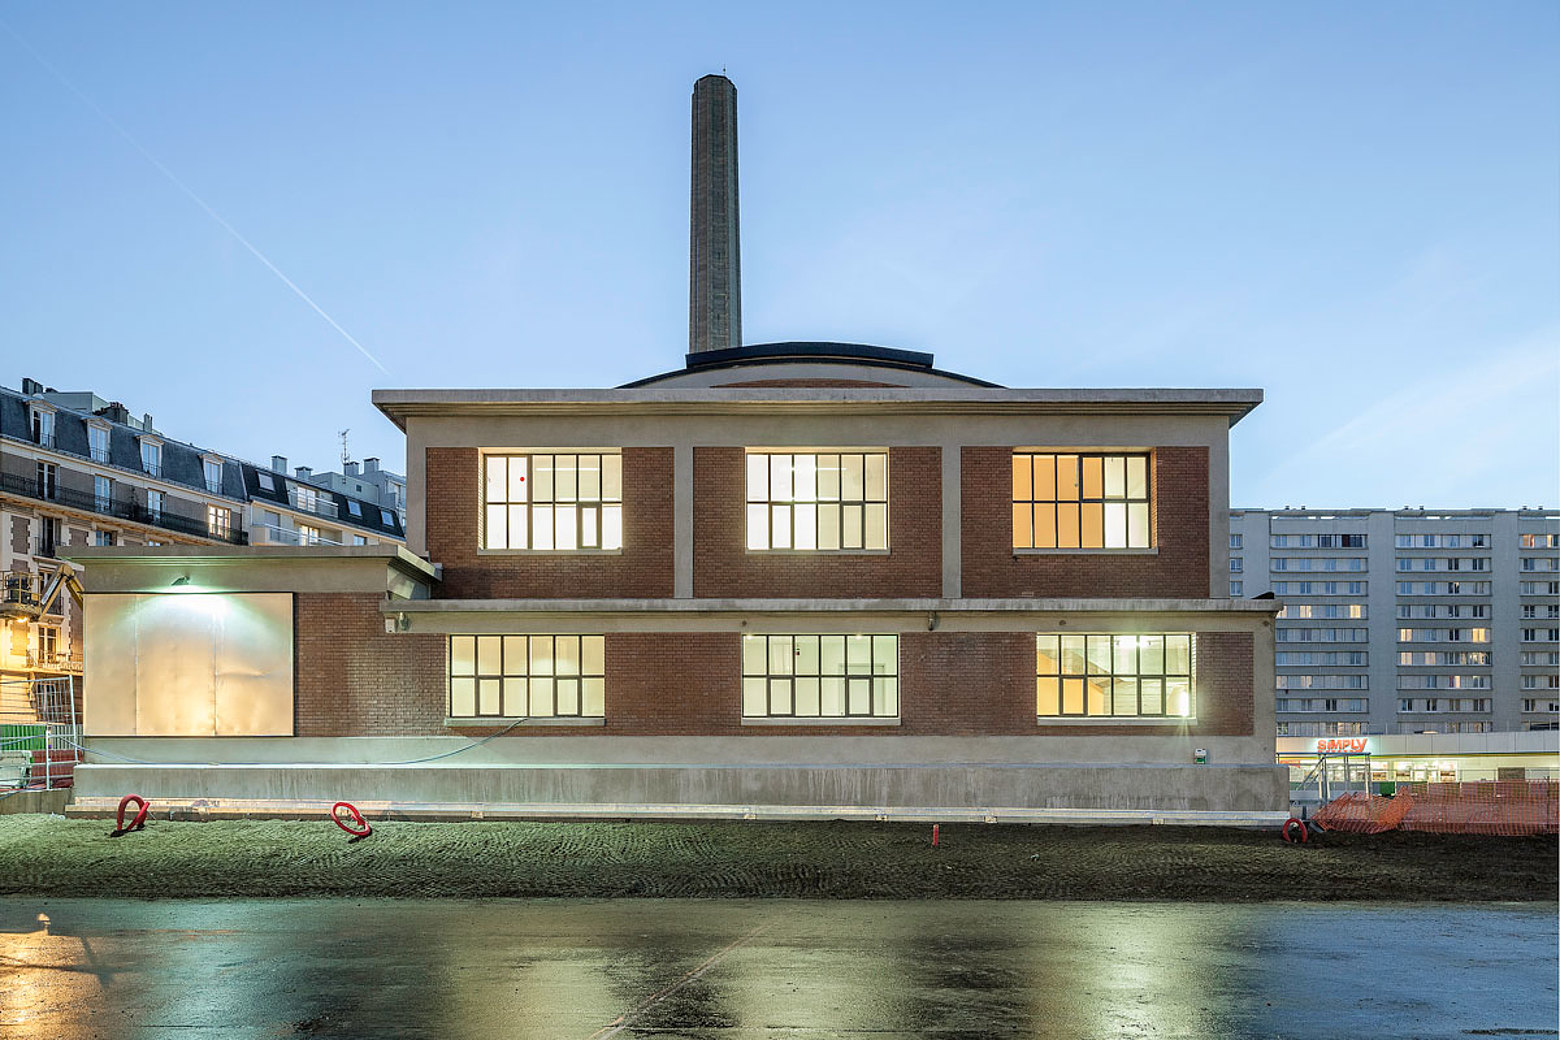 Renovated historic industry building